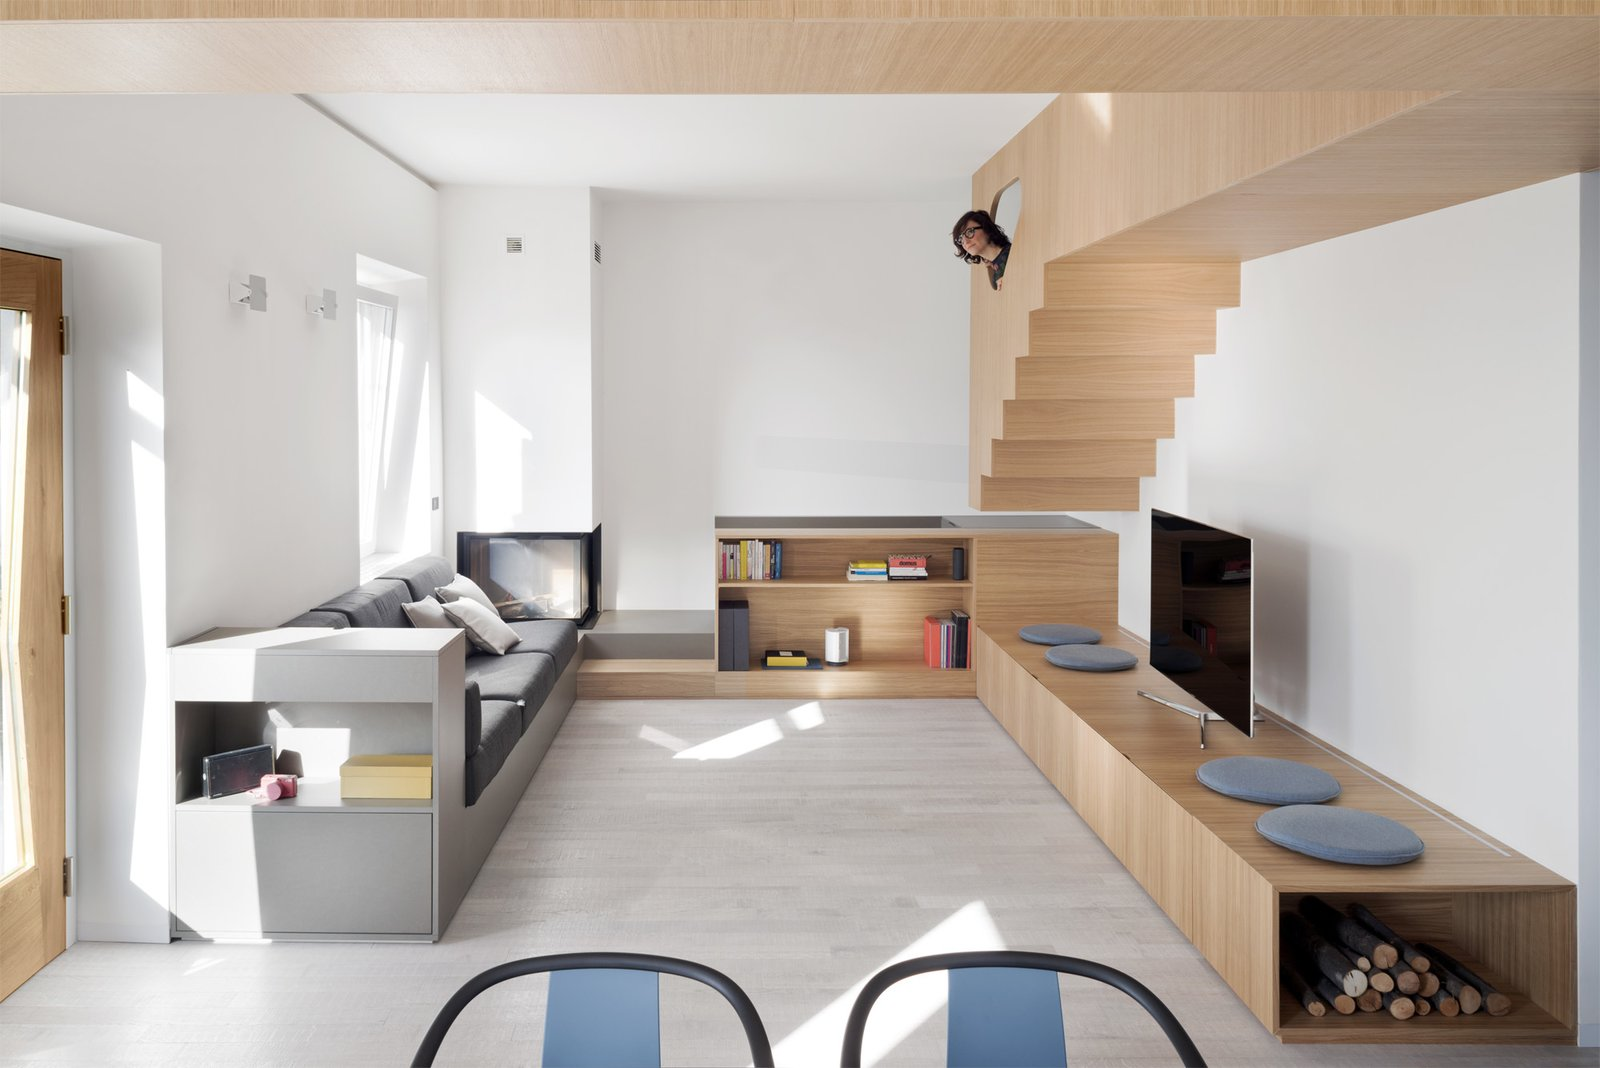 Before and After: A Streamlined Apartment in Italy Boasts Tons of Custom Furniture